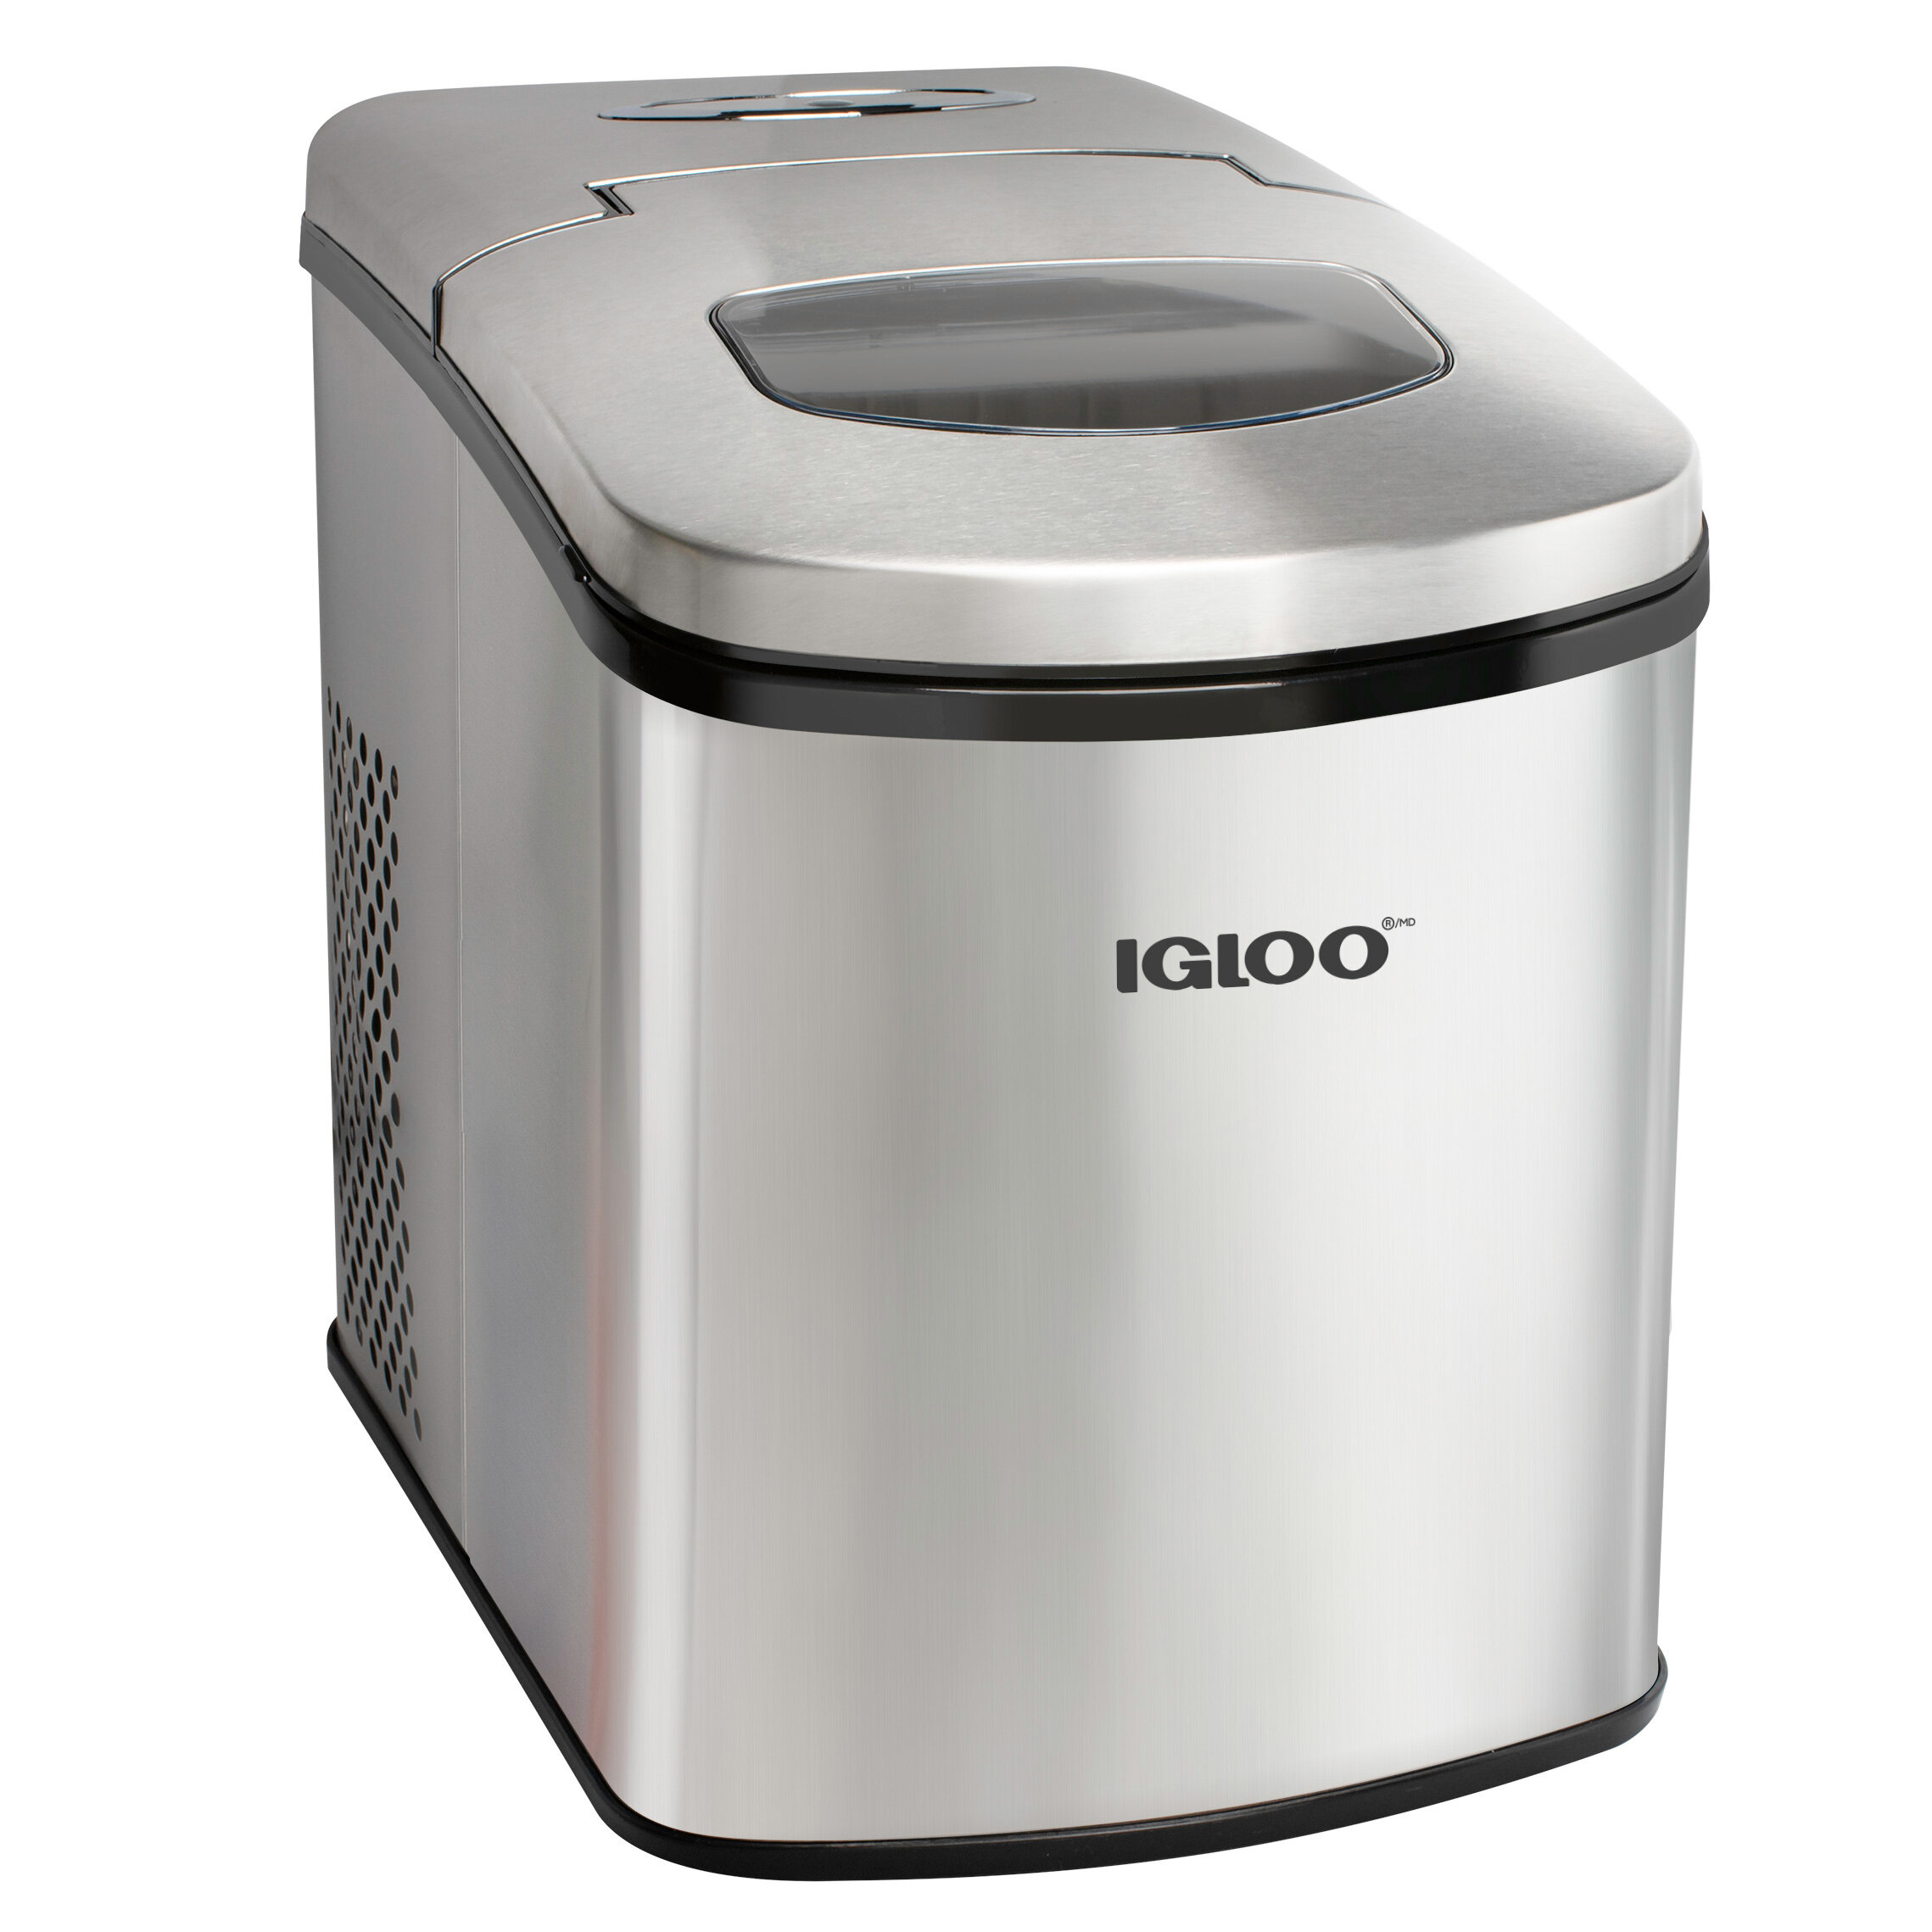 Igloo 26 Lb Daily Production Portable Ice Maker Reviews Wayfair